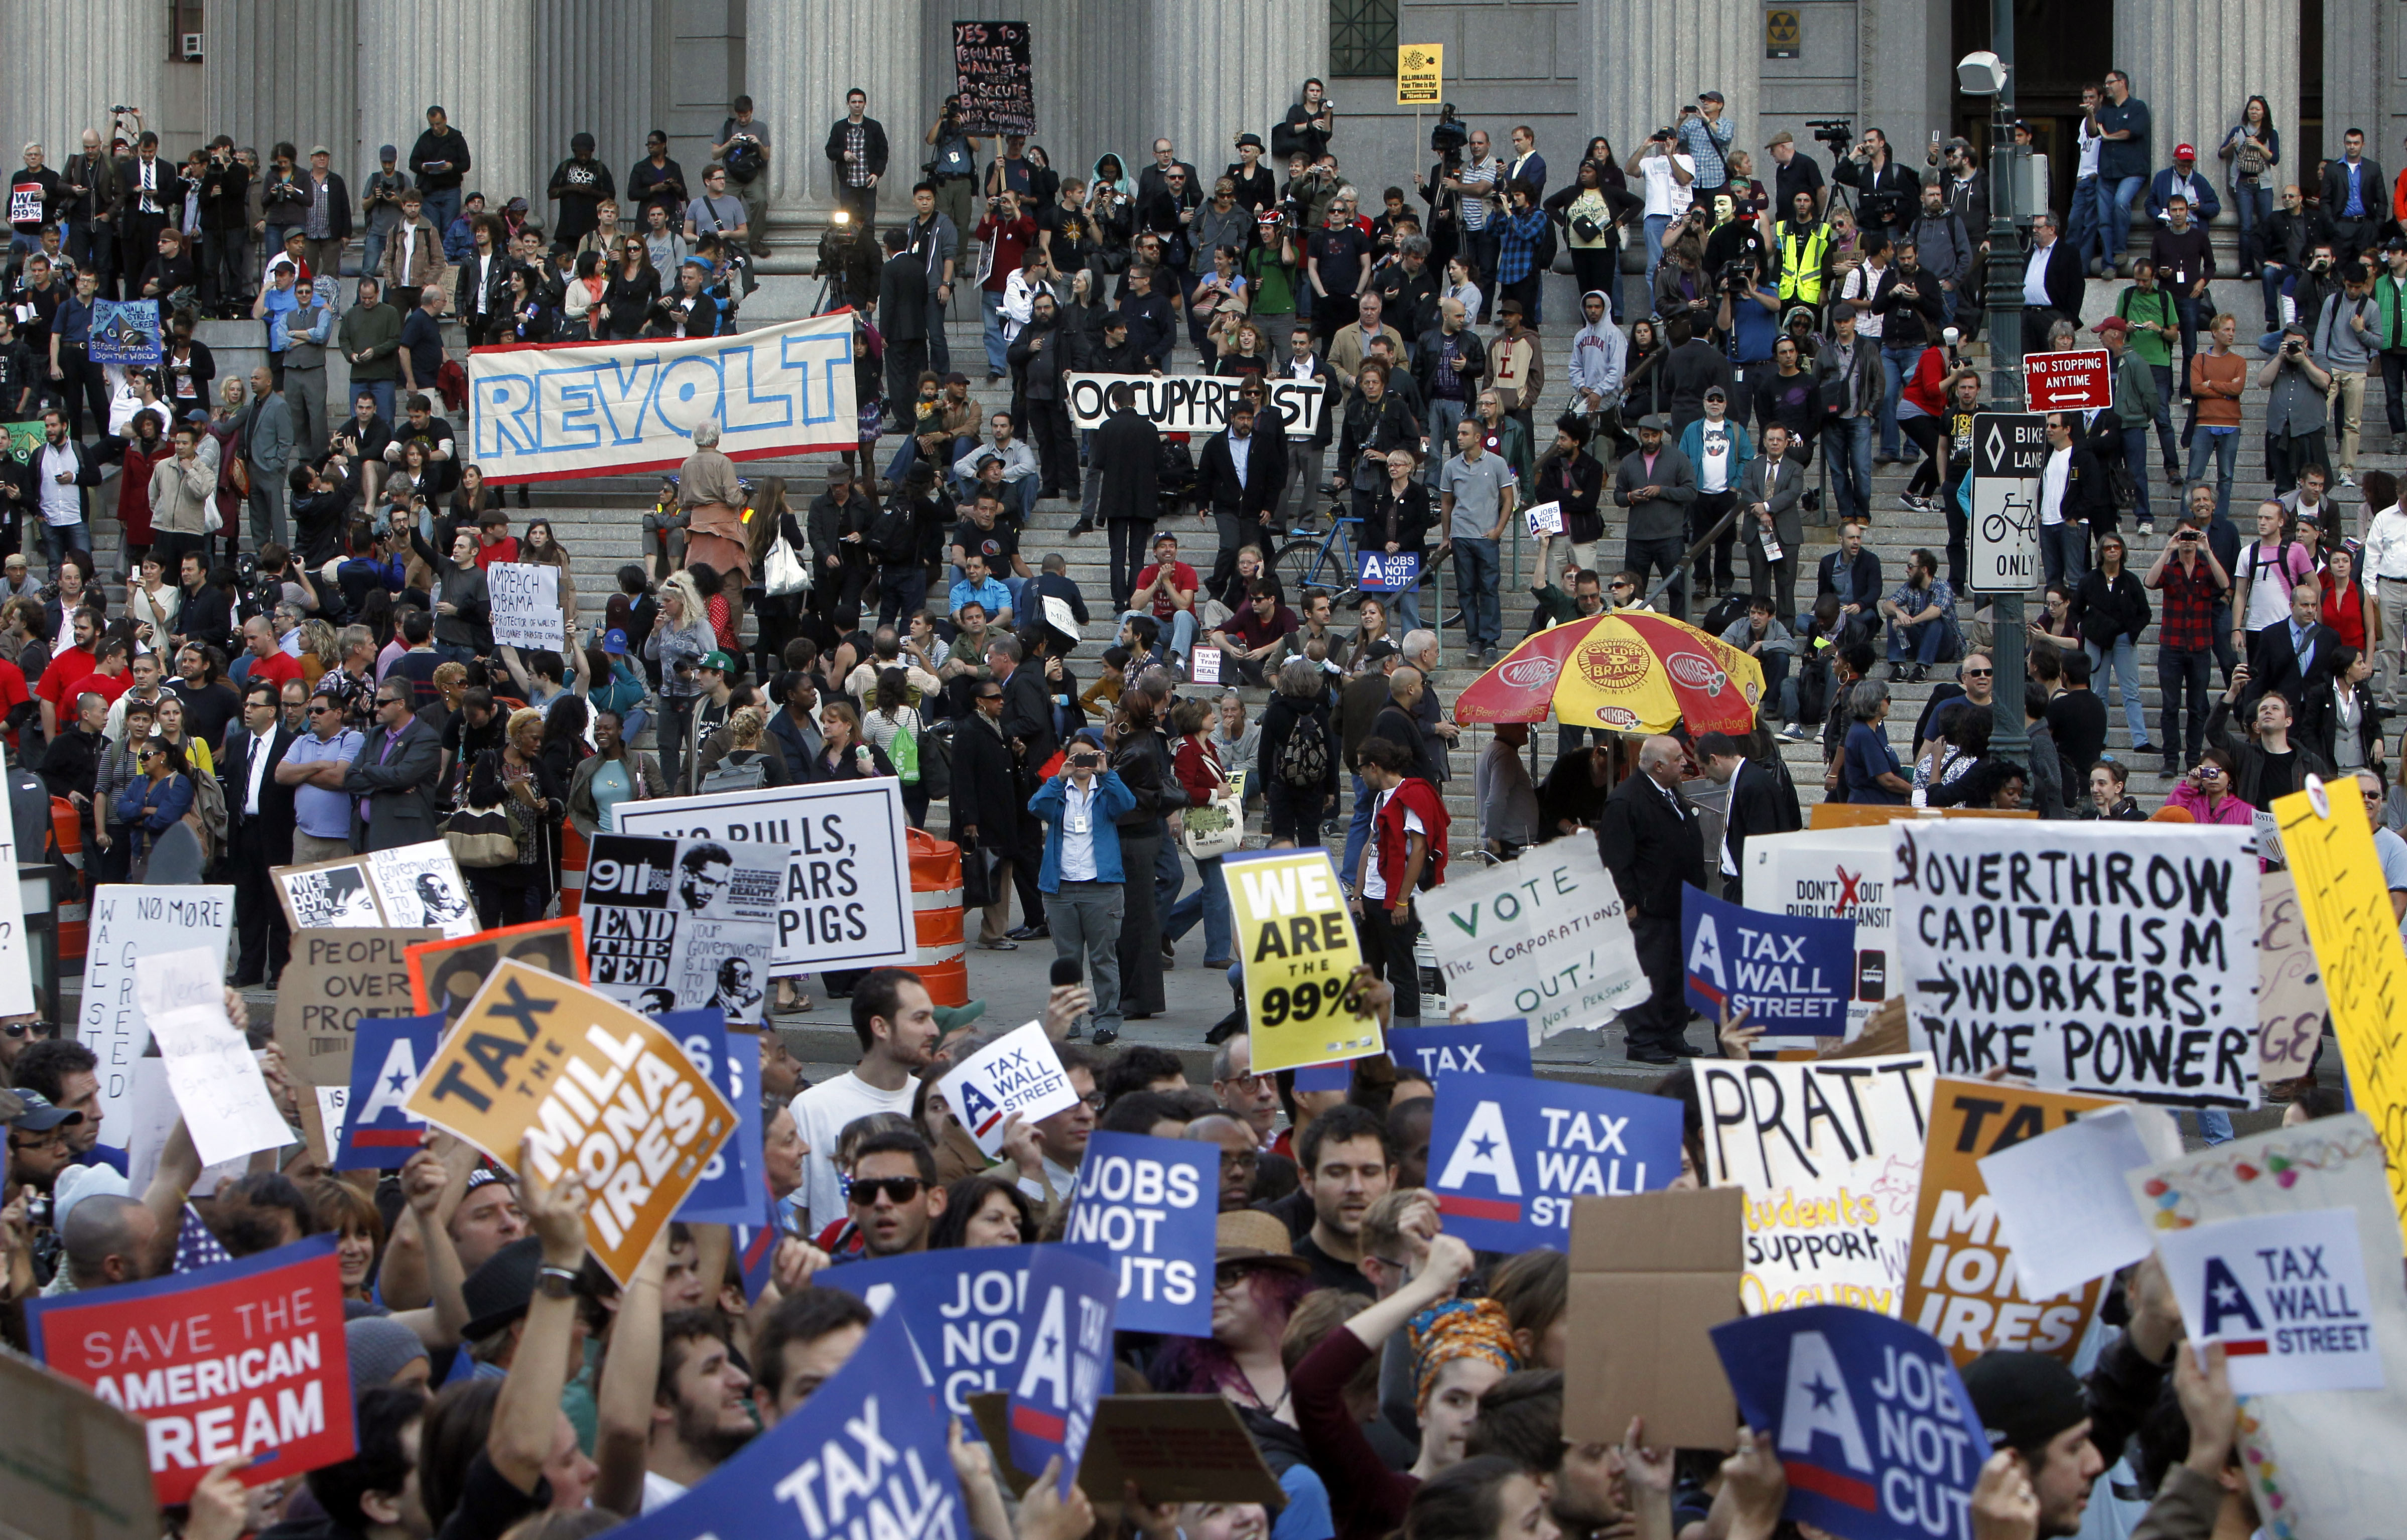 Wall Street protesters: We're in for the long haul